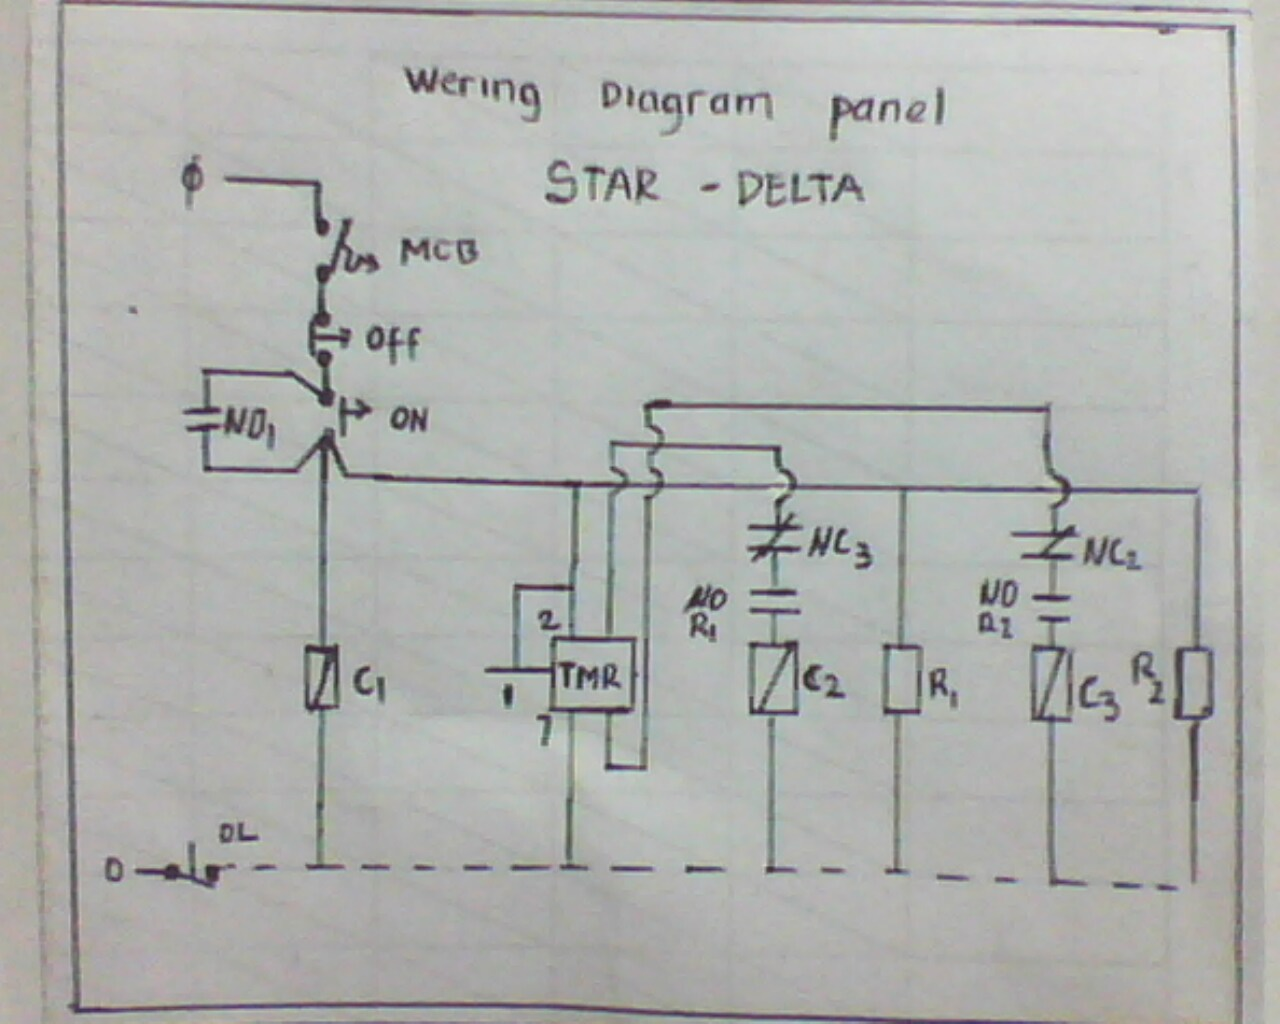 hight resolution of wiring diagram of amf panel